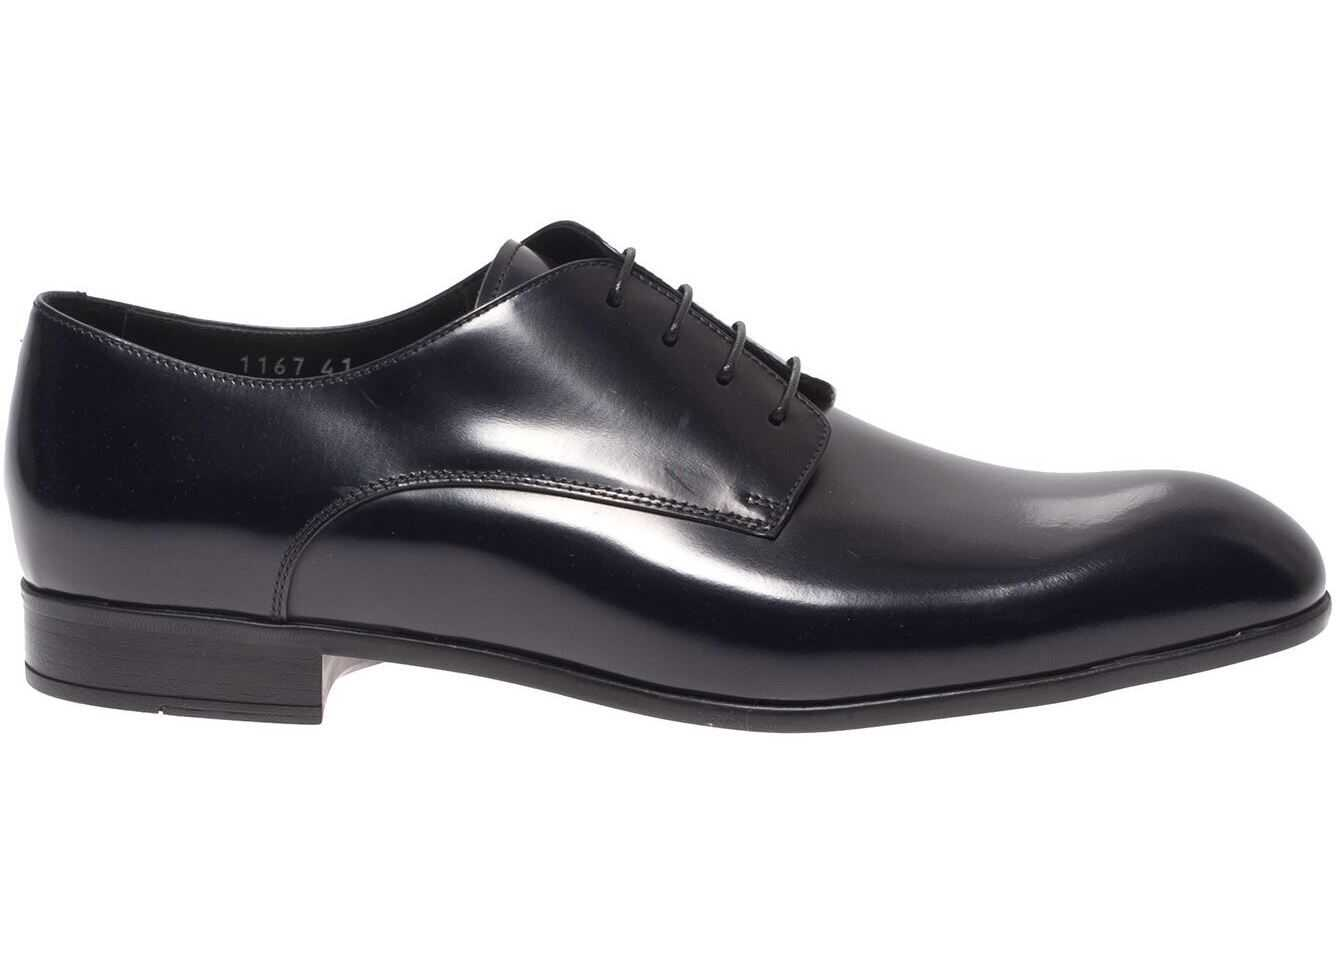 Doucal's Brushed Leather Derby In Dark Blue DU1167LIMEUF028NB00 Blue imagine b-mall.ro